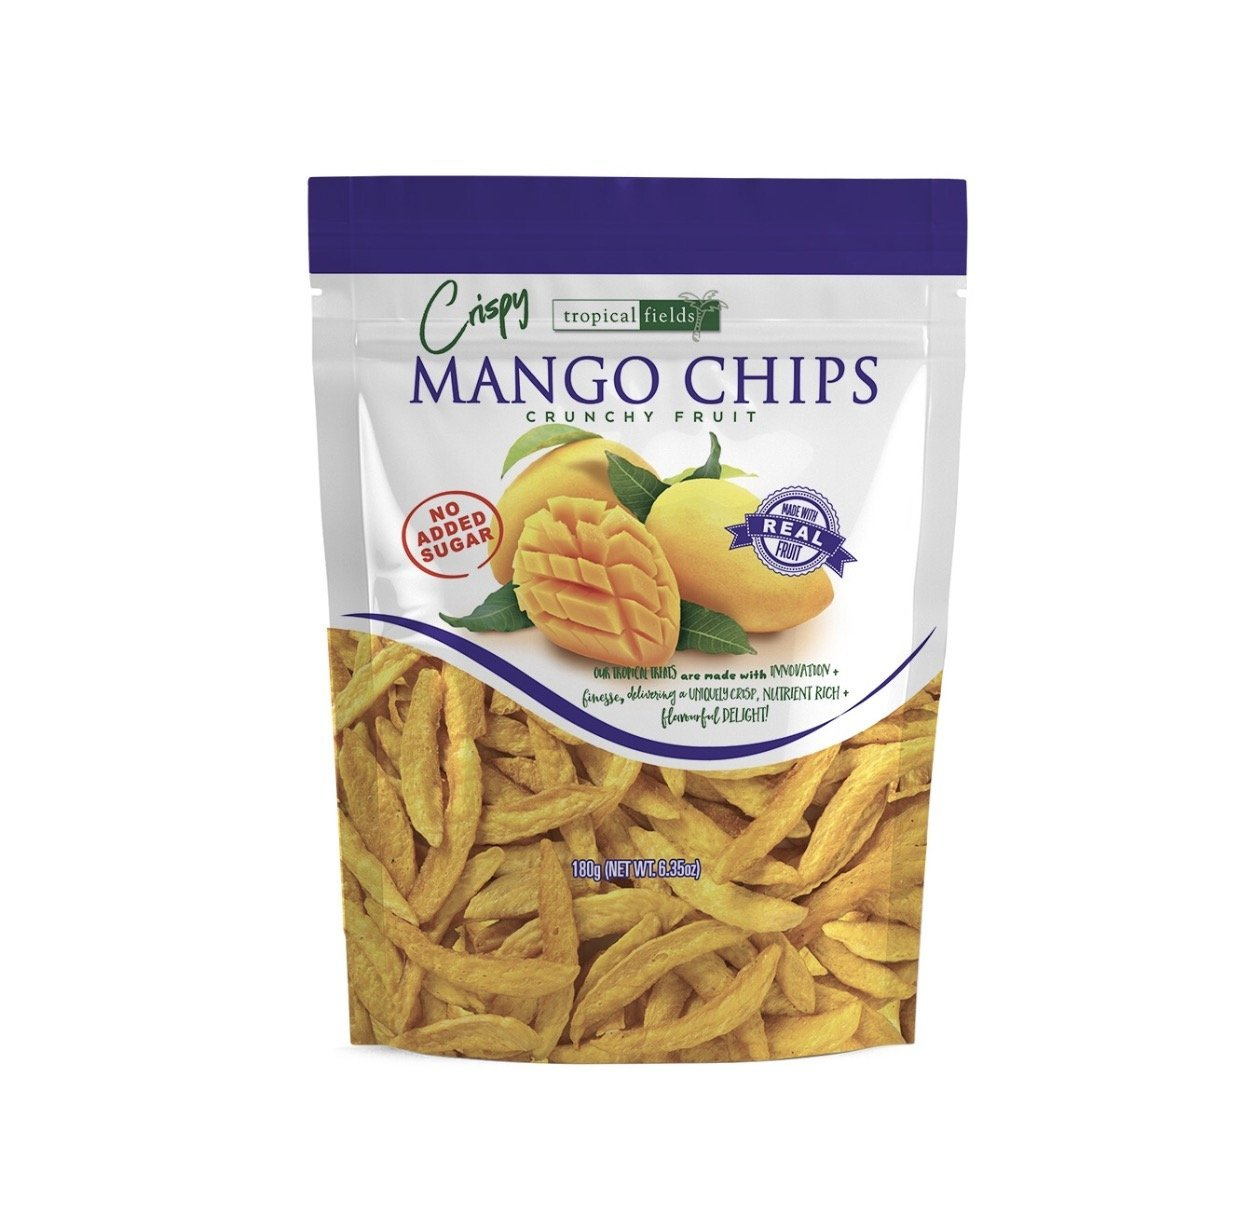 Tropical Fields MANGO CHIPS